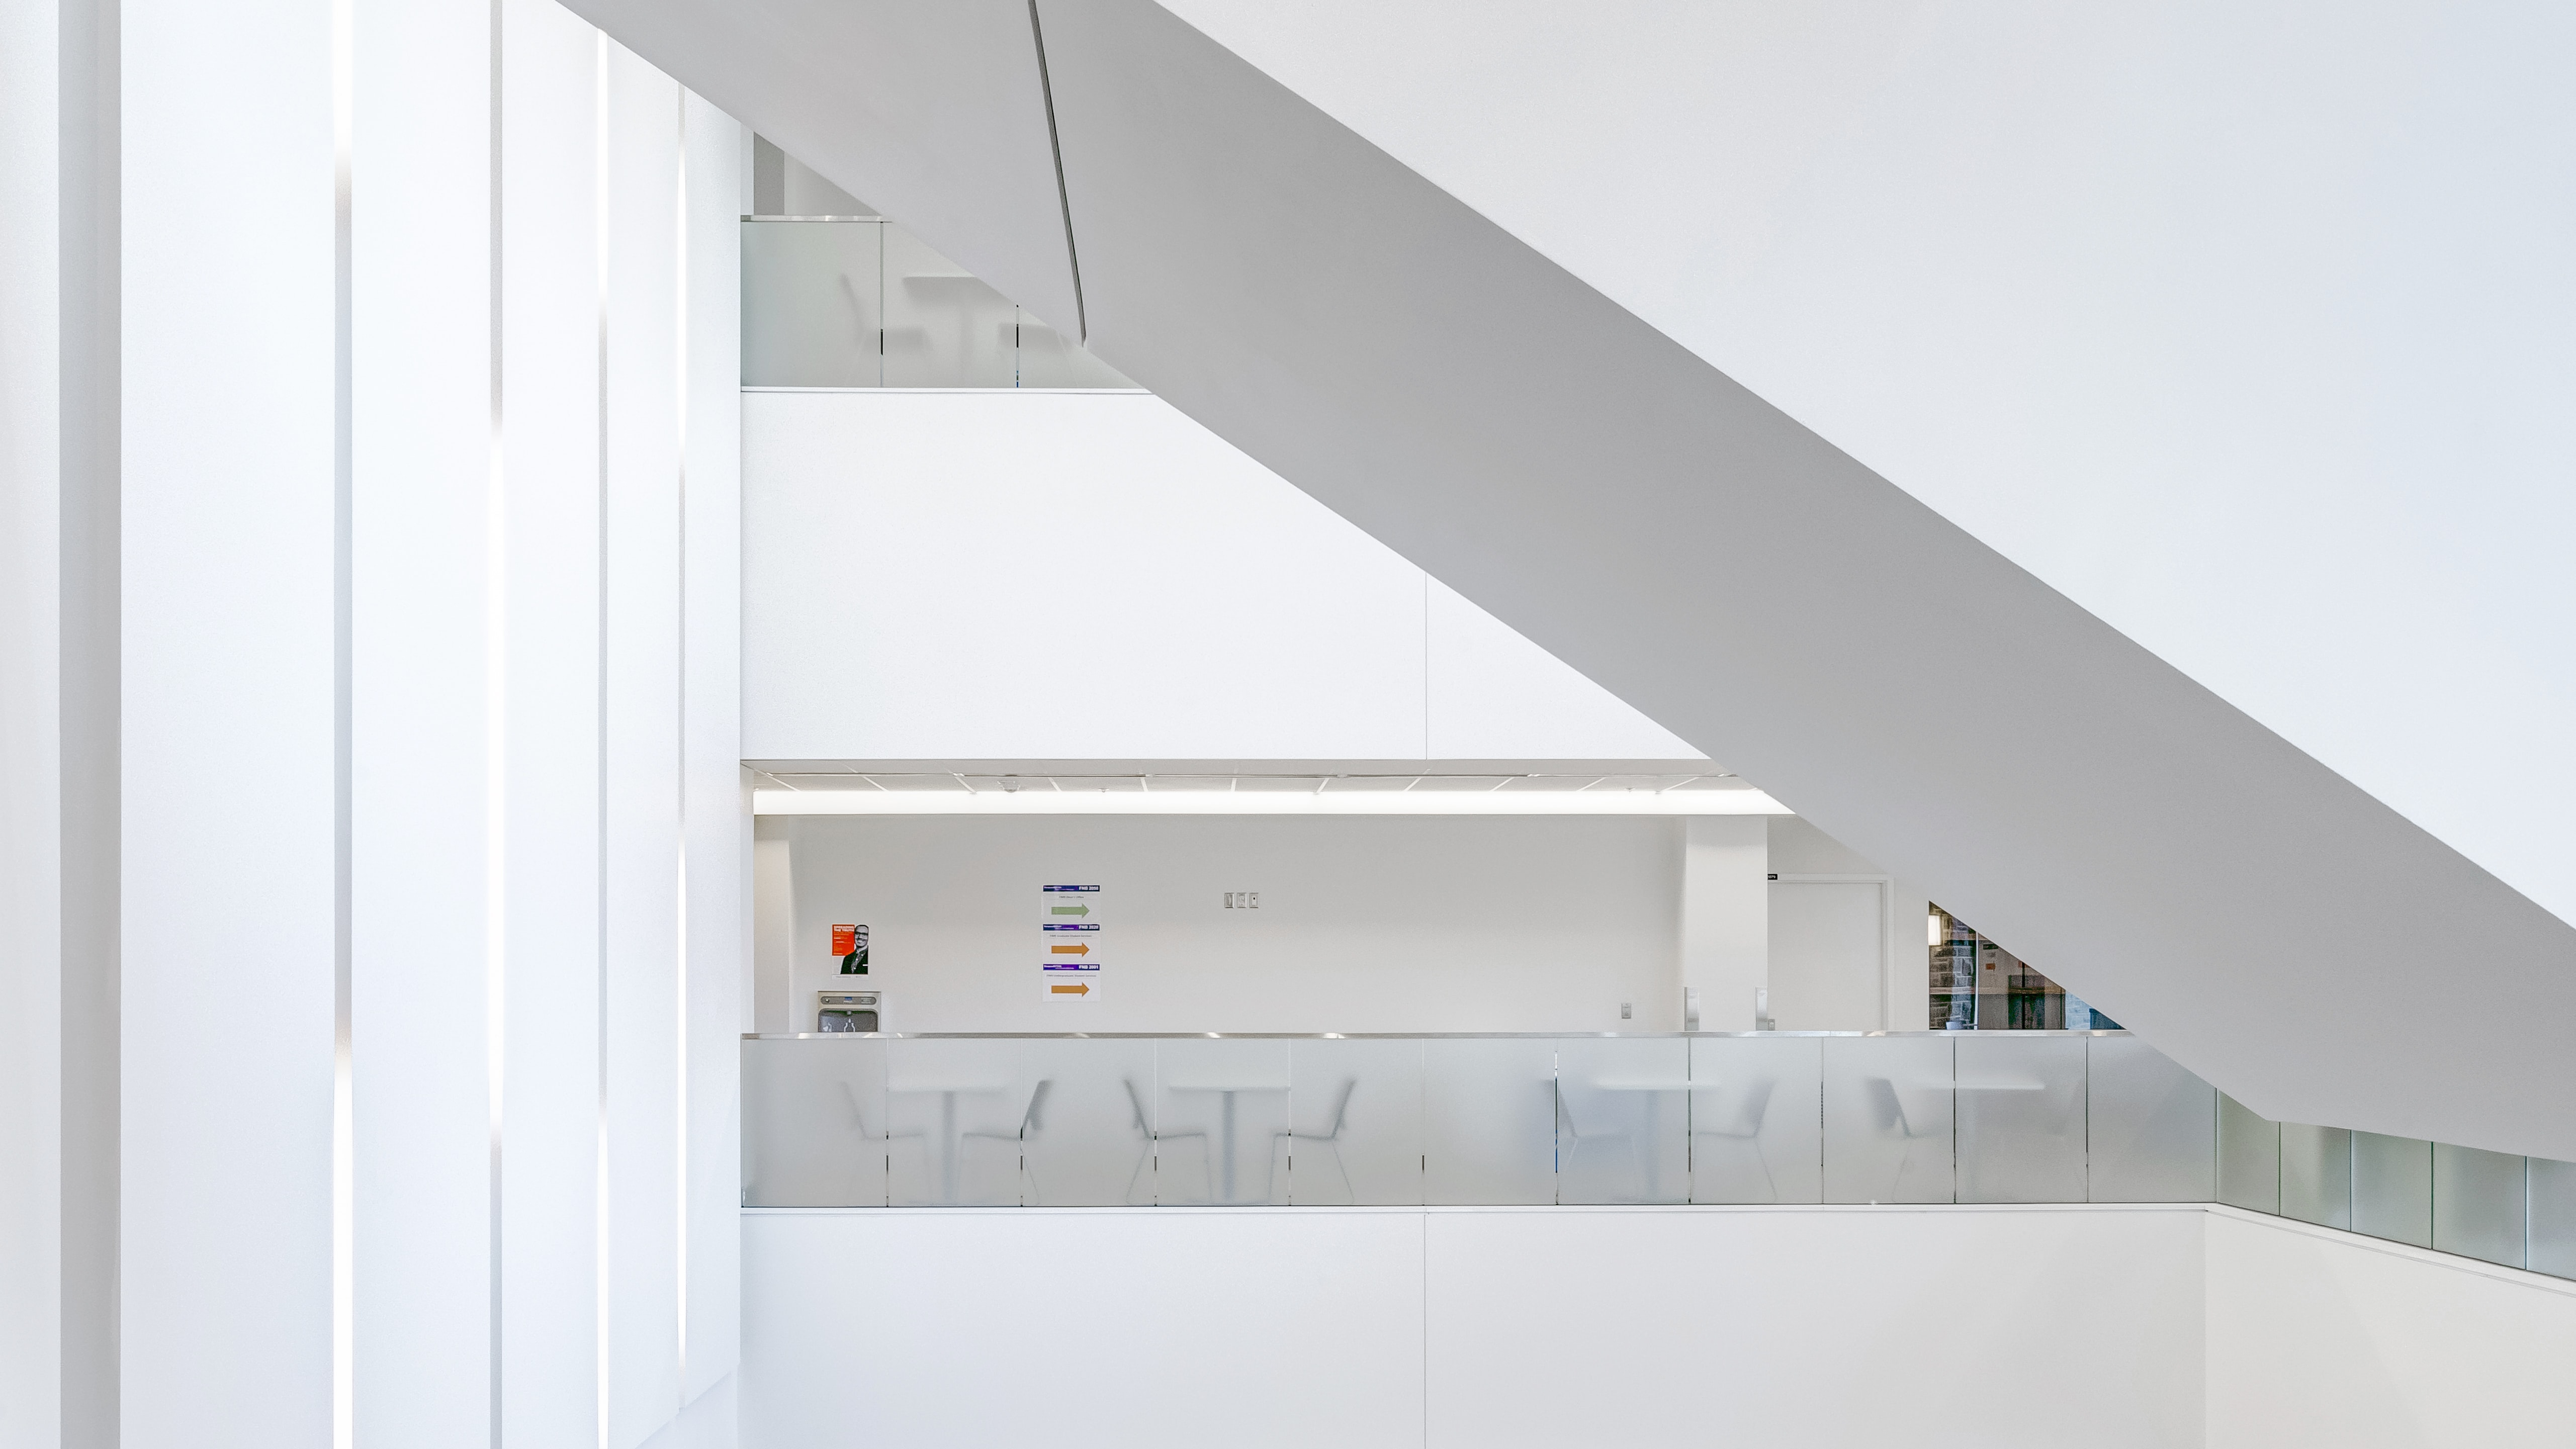 White interior of FIMS Nursing Building with tables and chairs across the room